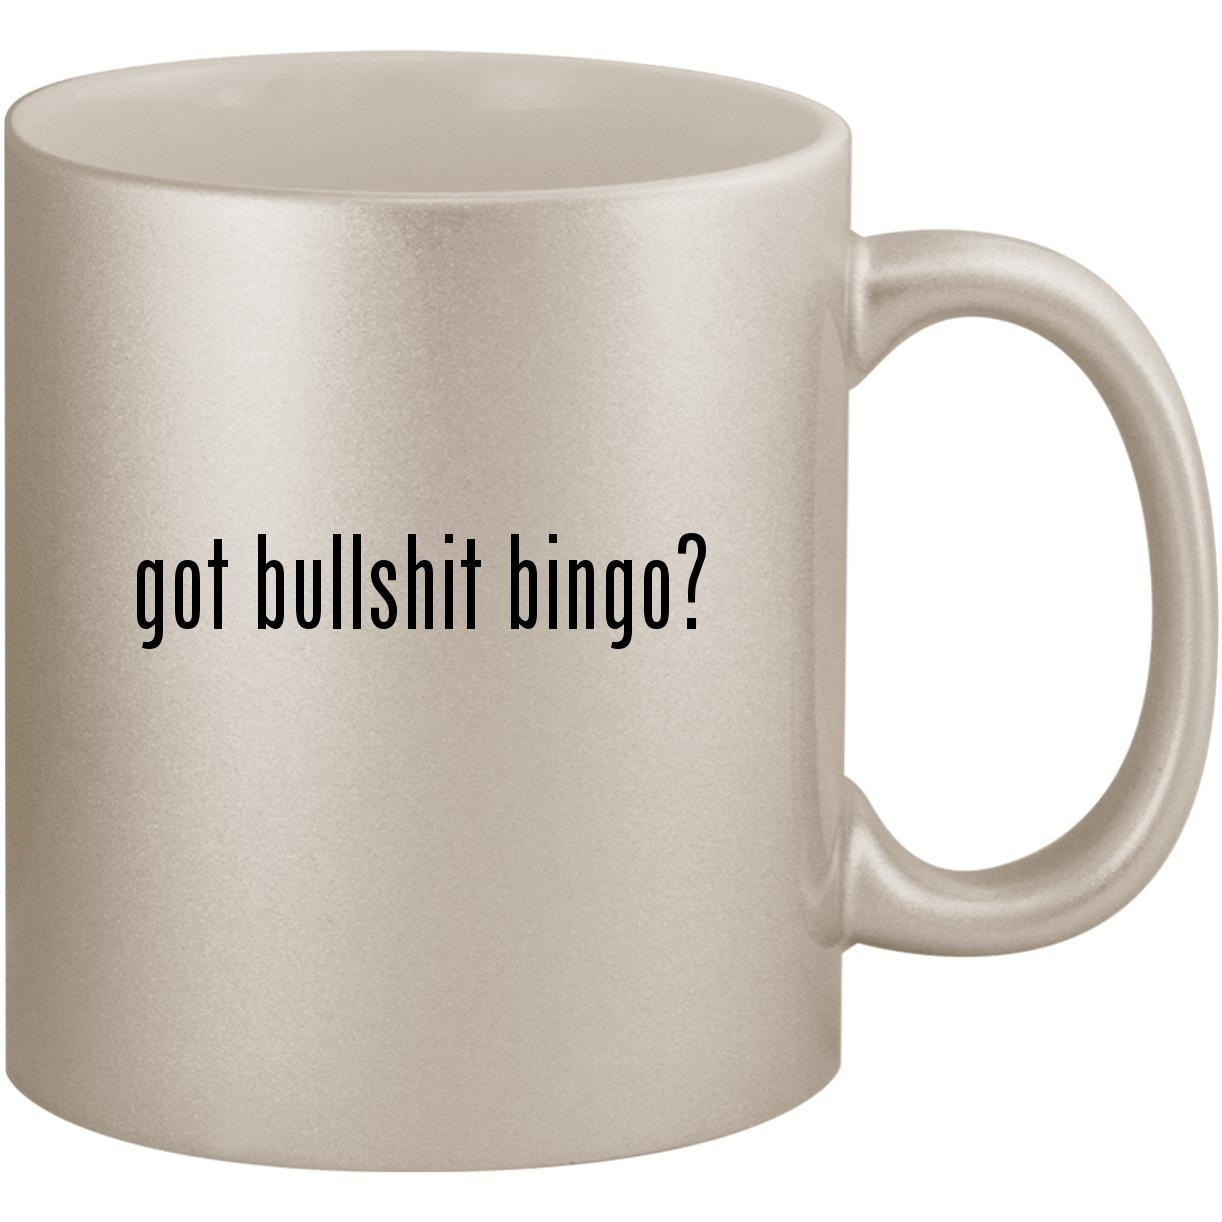 got bullshit bingo? - 11oz Ceramic Coffee Mug Cup, Silver by Molandra Products